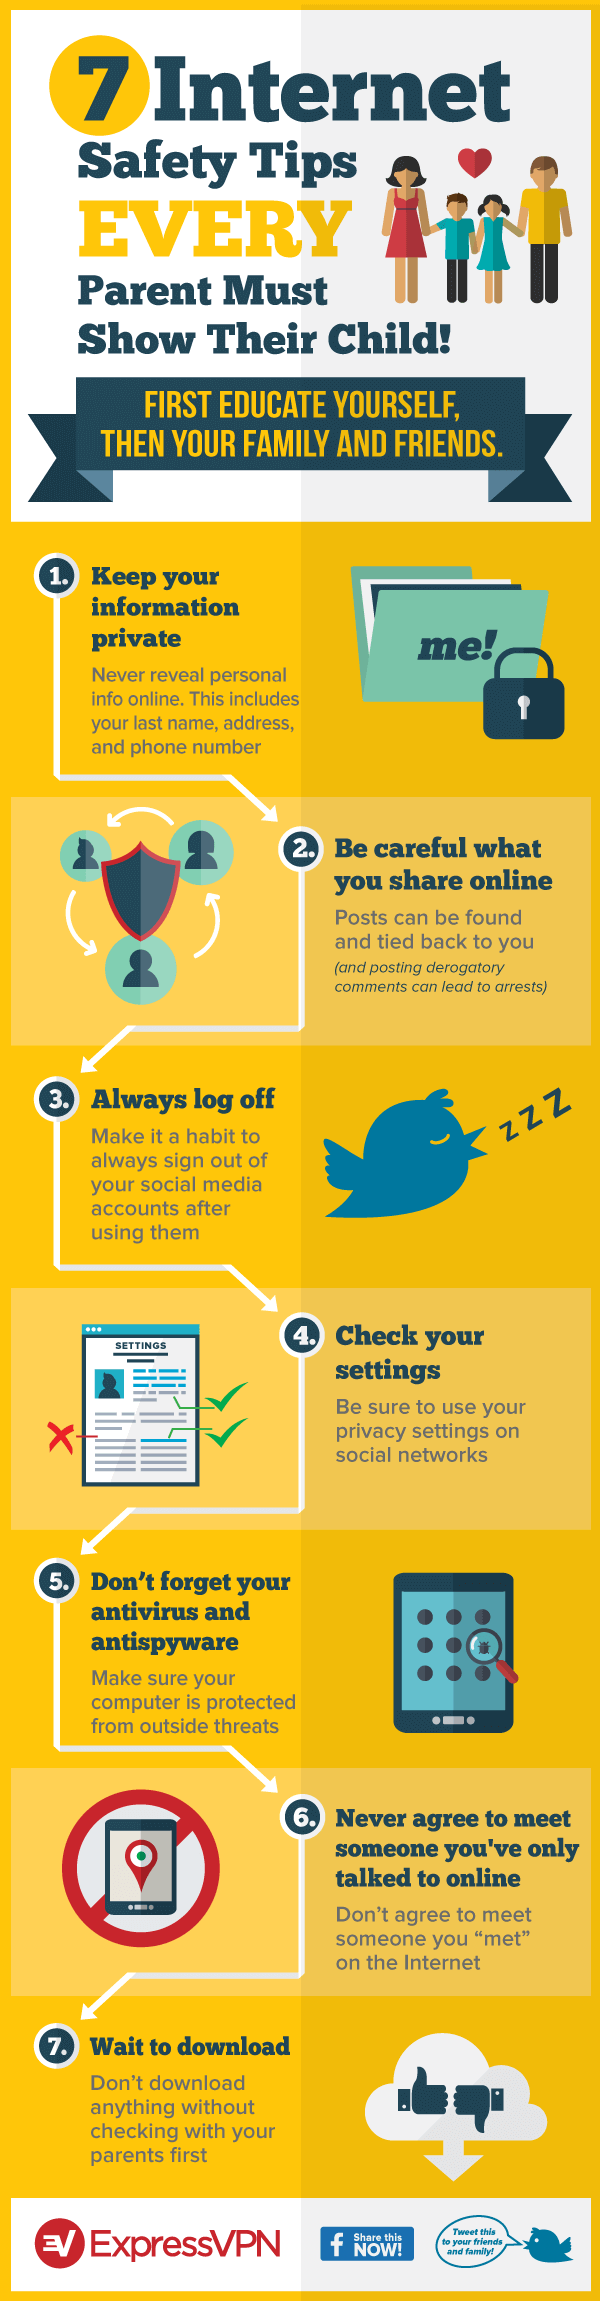 How to Keep Your Kids Safe Online - Infographic